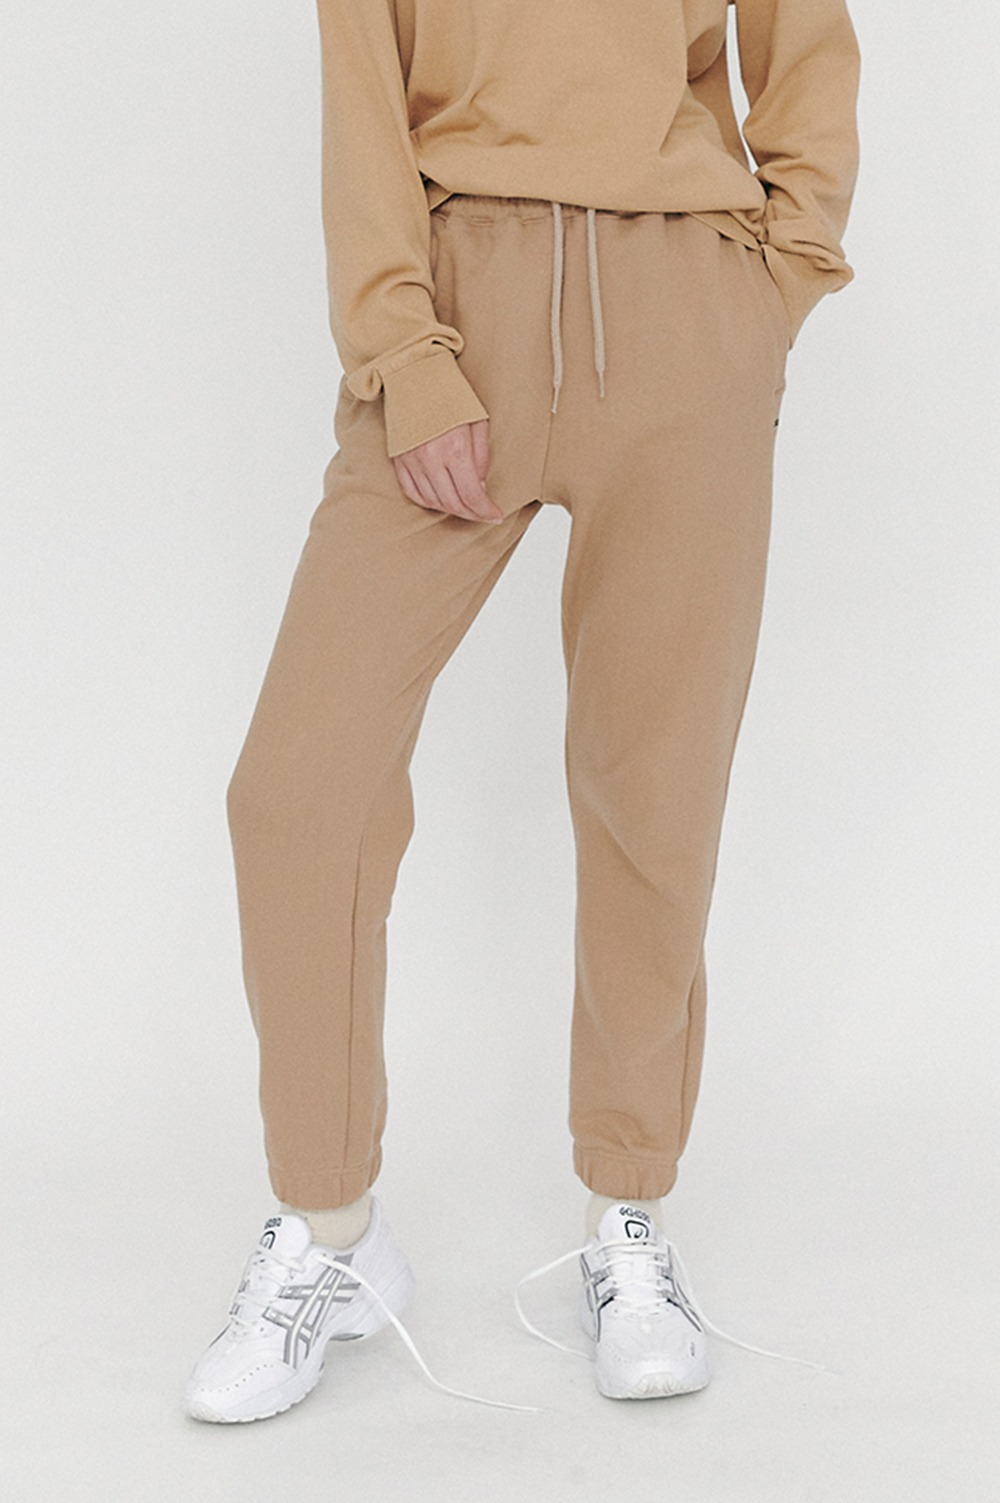 clove - New Active Sweat Pants (Beige)